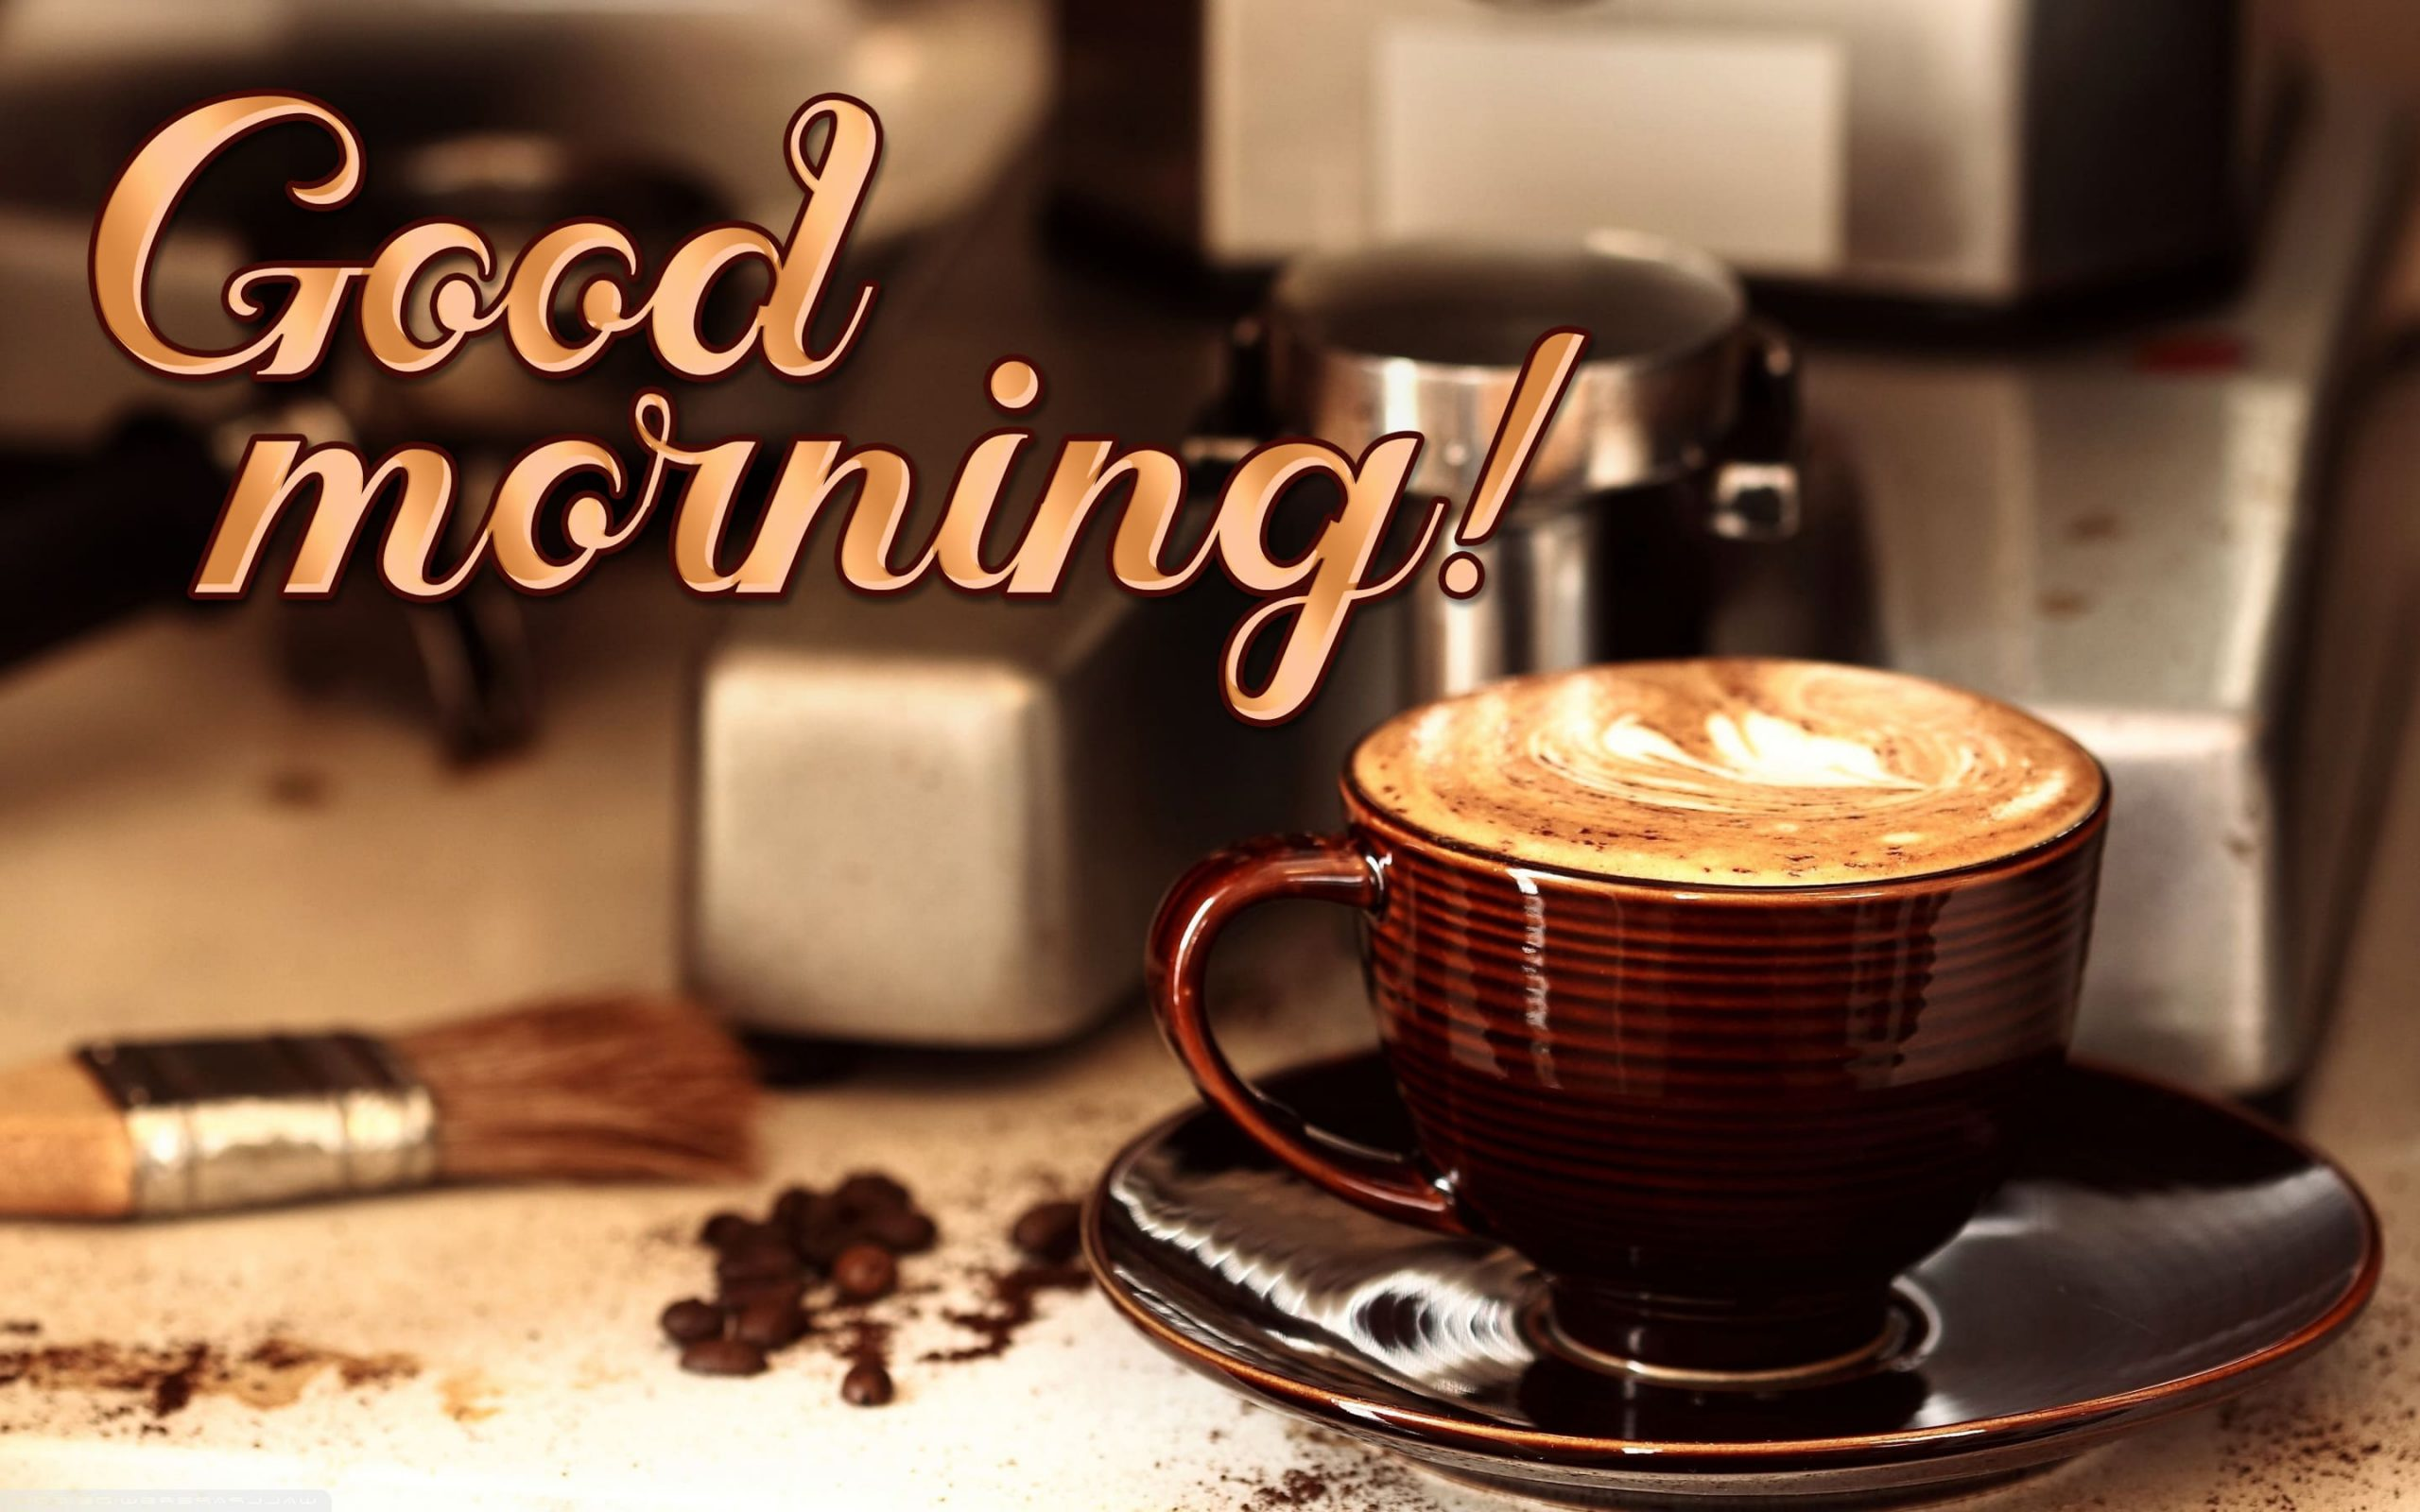 wishes for good morning images